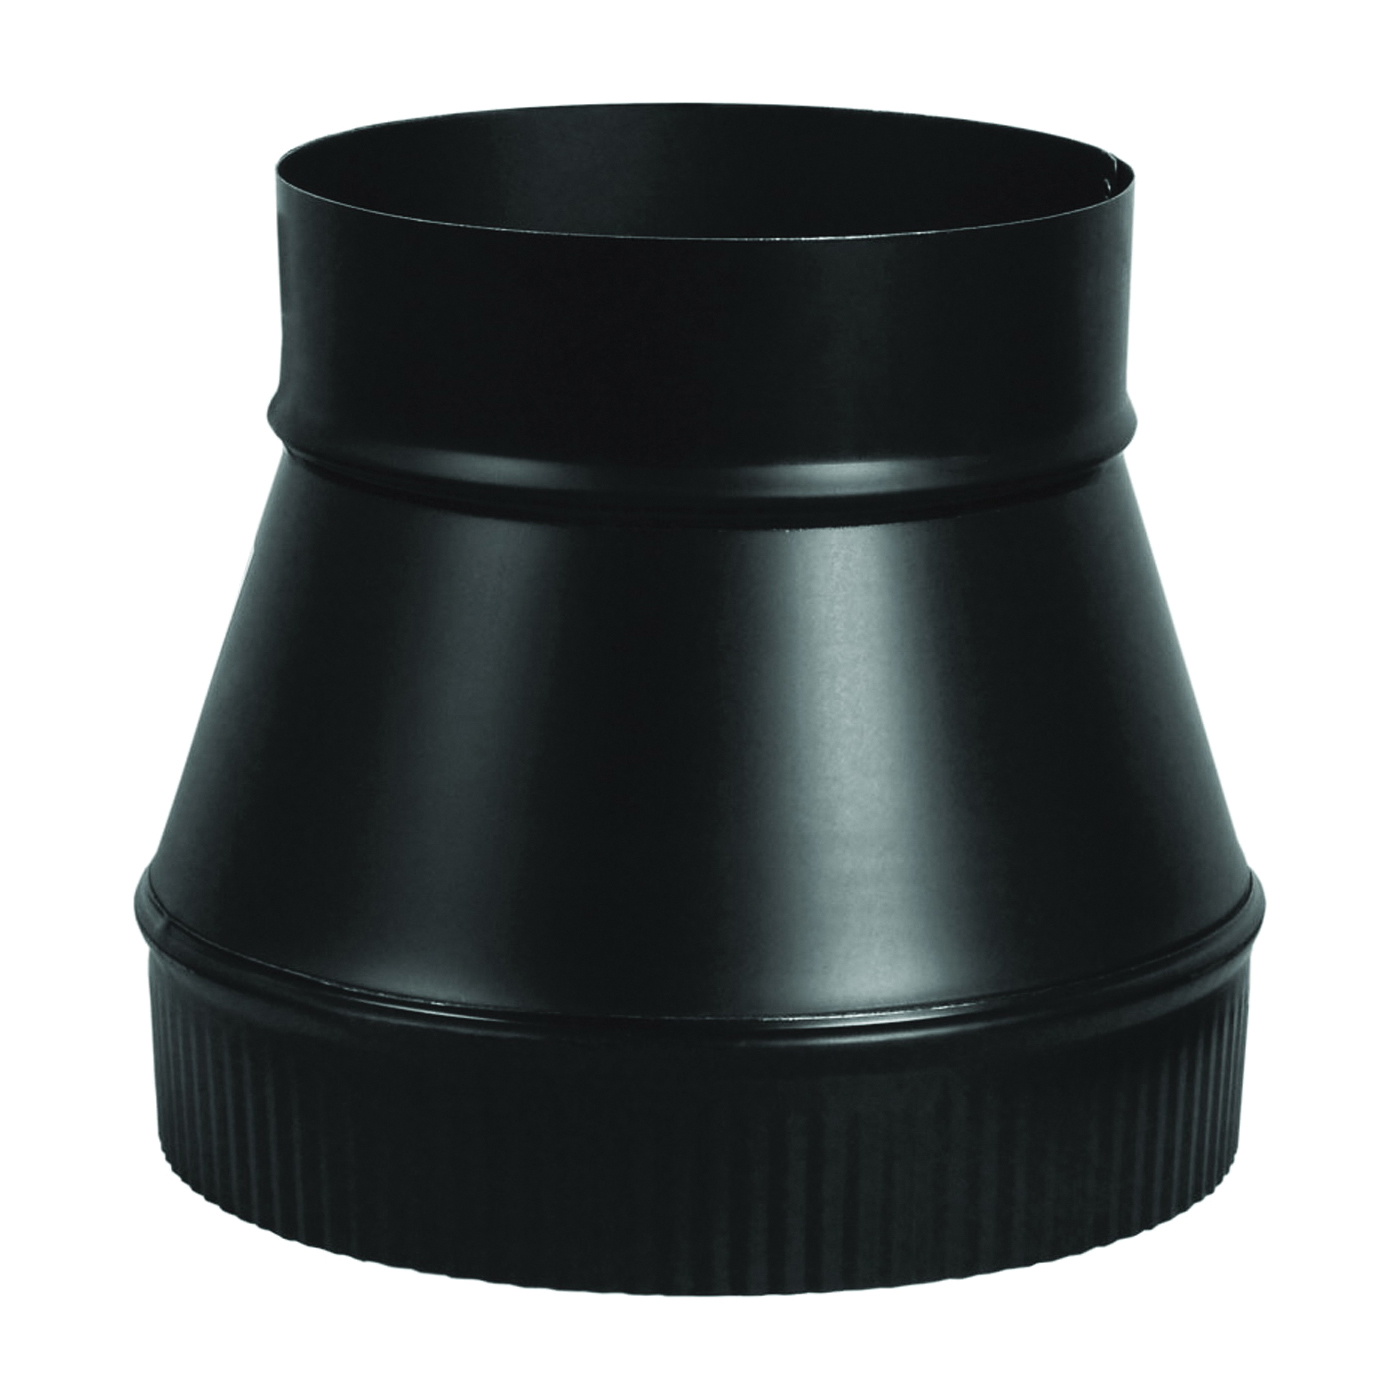 Picture of Imperial BM0062 Increaser, 6 to 8 in, Black, Matte